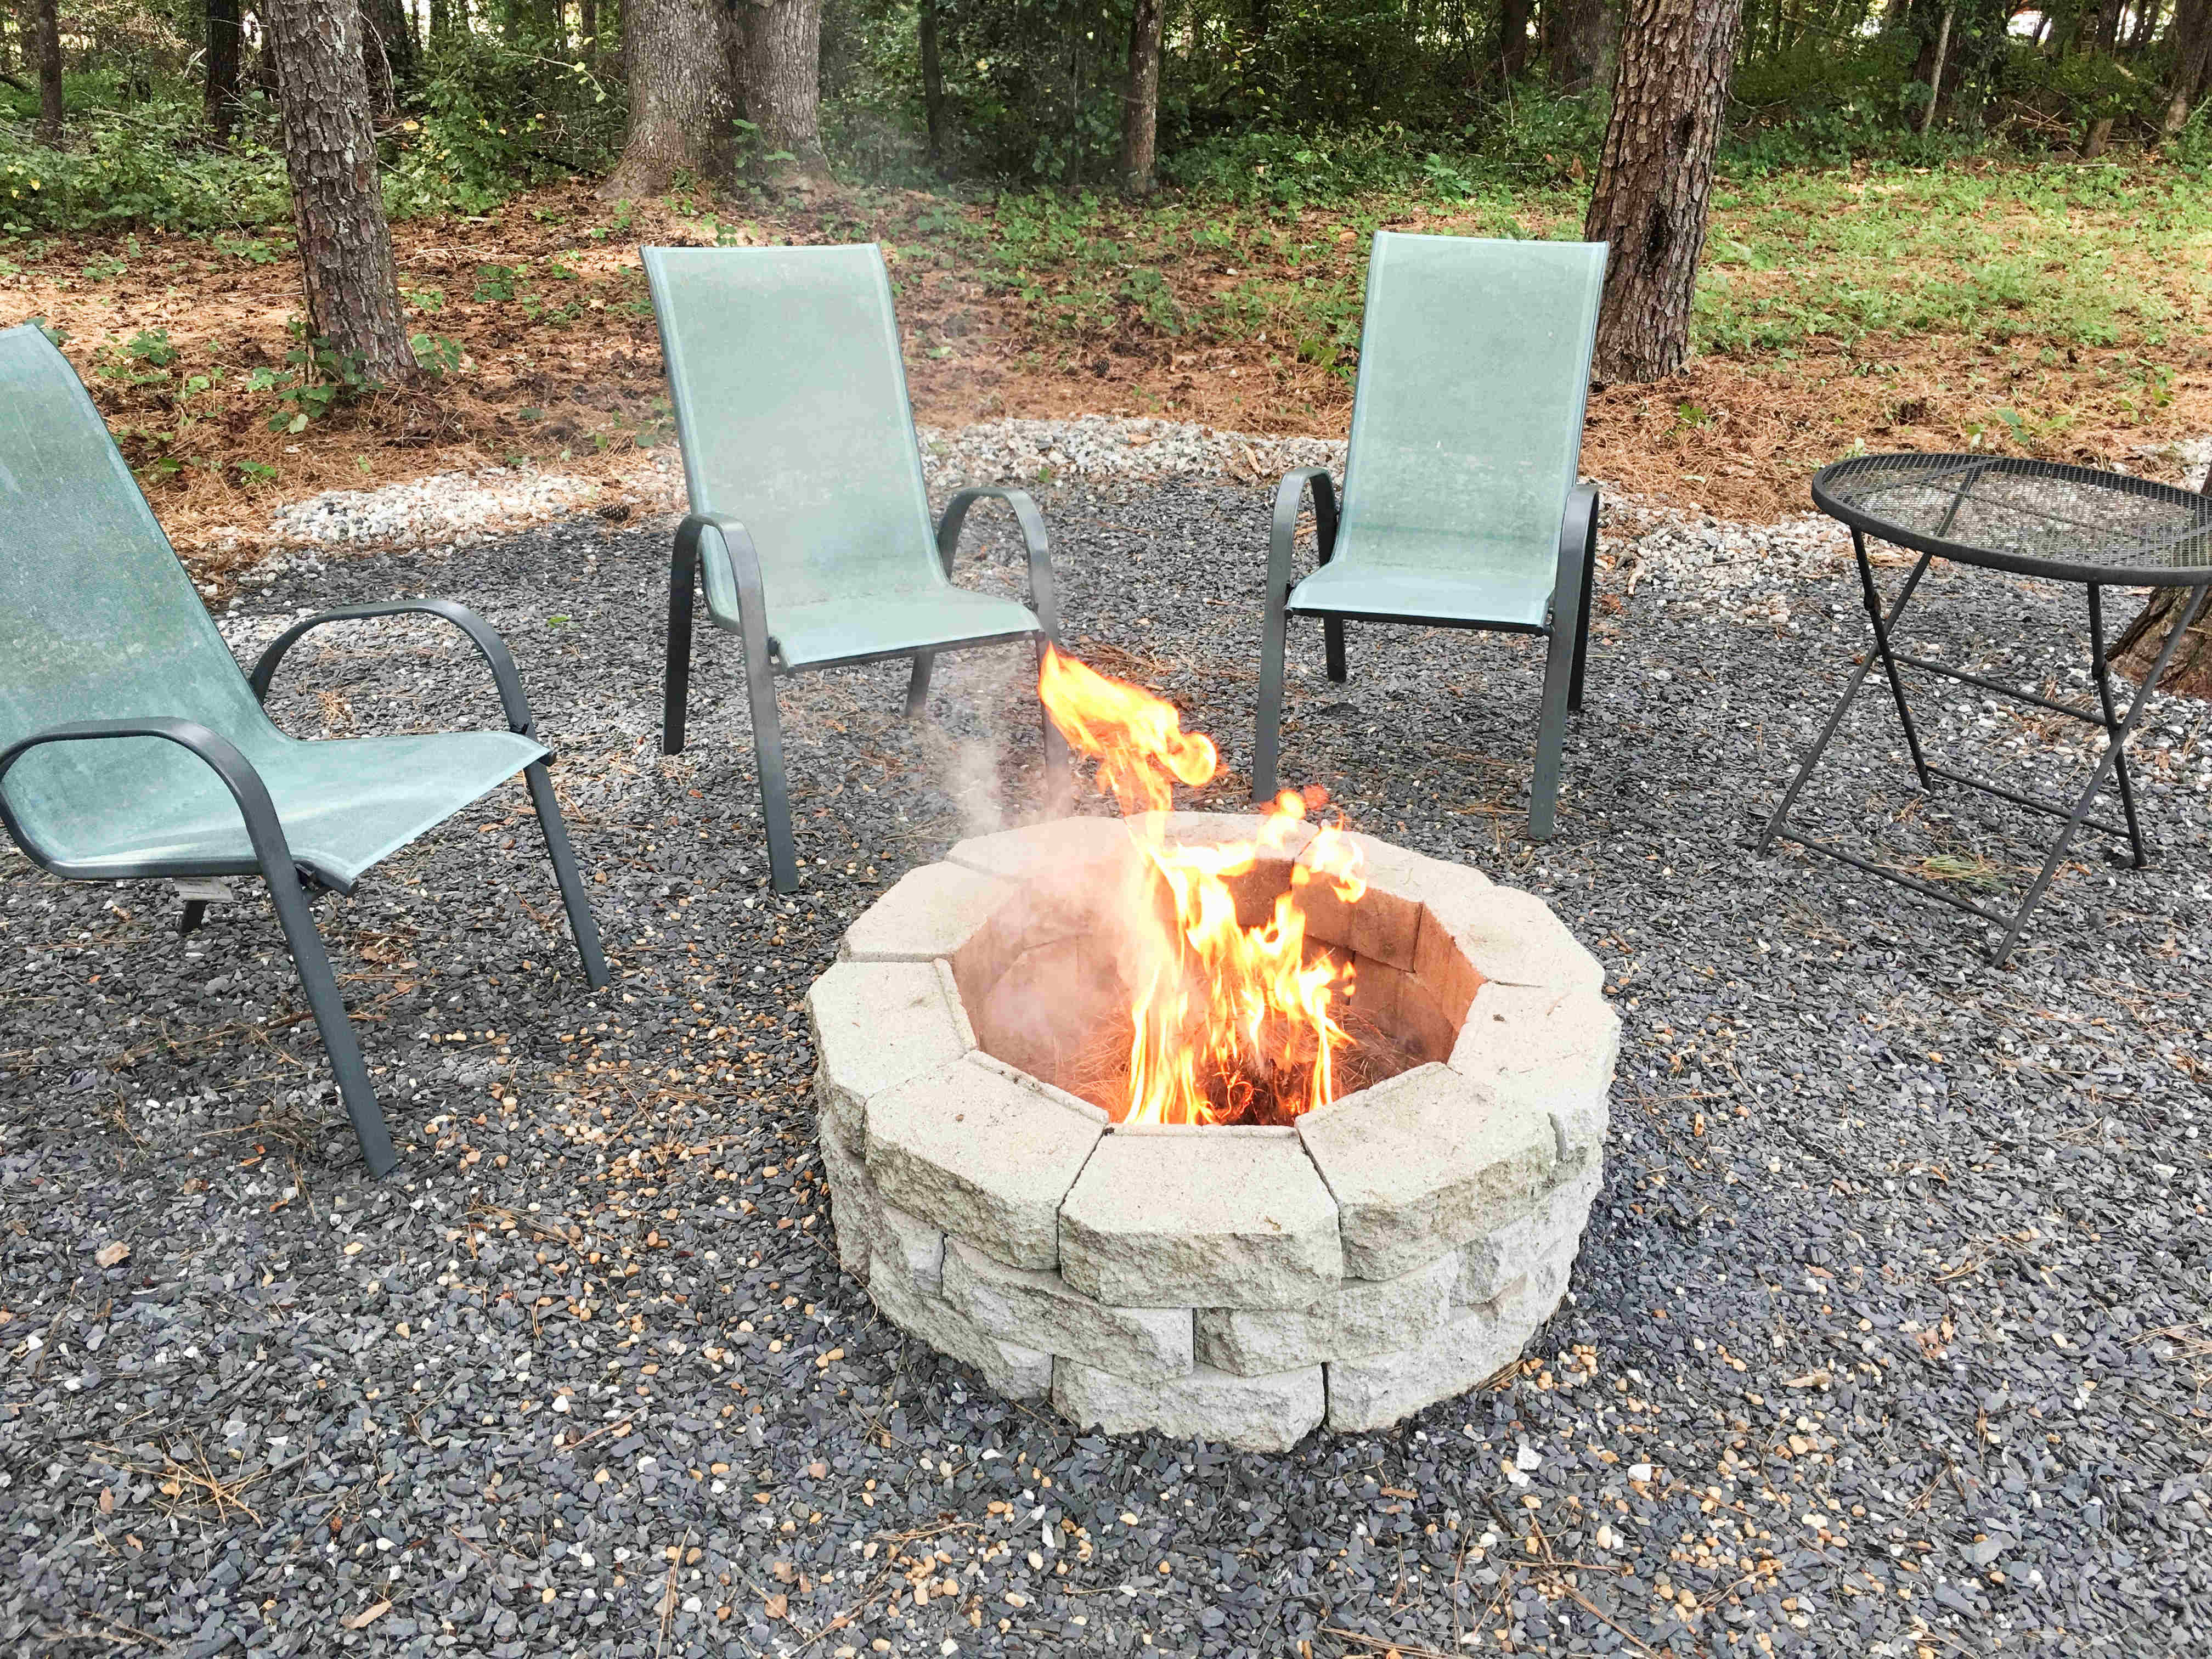 How to Make a DIY Fire Pit in Your Backyard - Building Our Rez